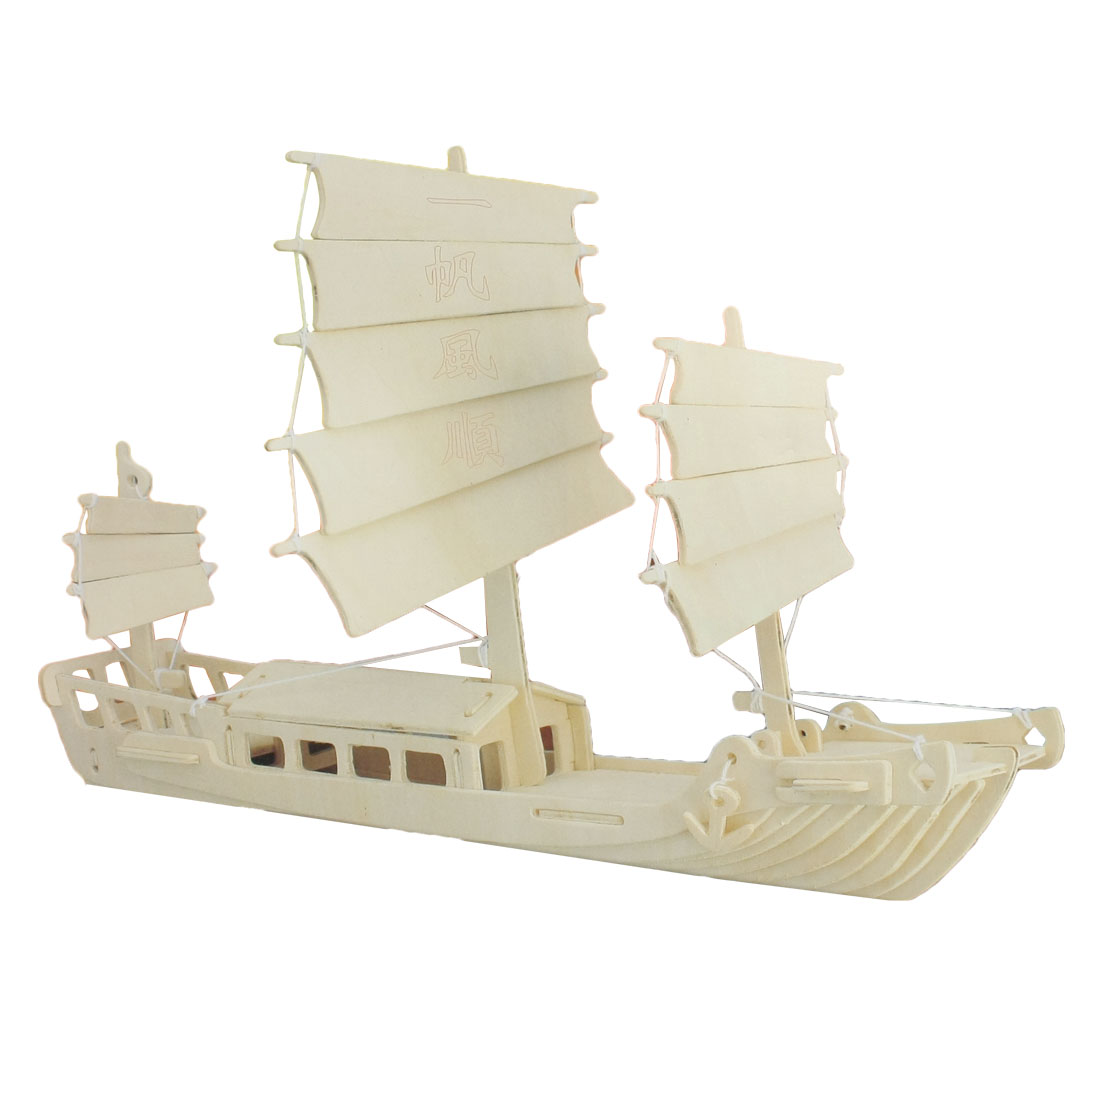 Woodcraft Construction Kit Lucky Word Print Wood Model Chinese Junk Boat